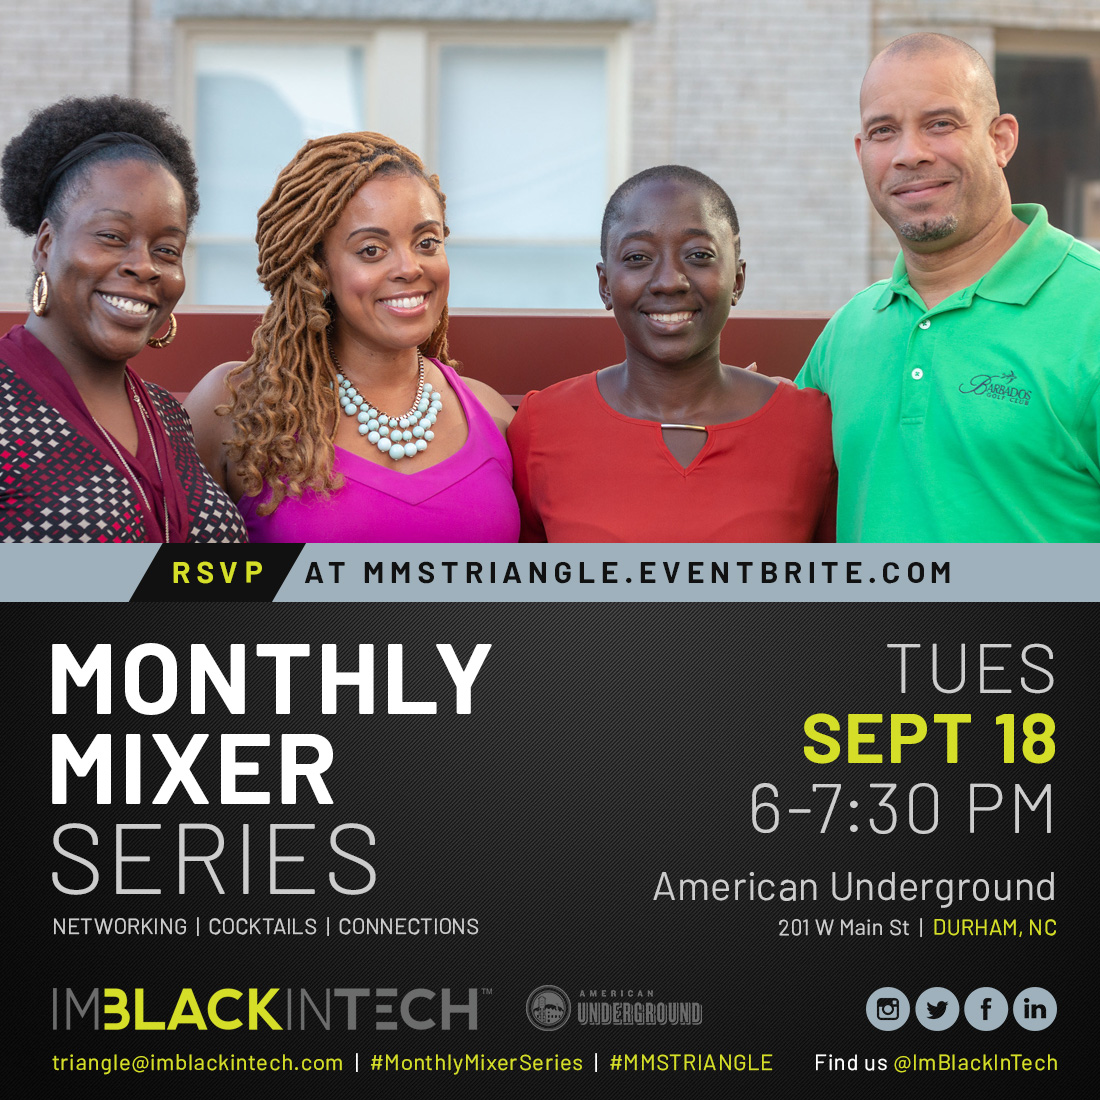 sept Imblackintech